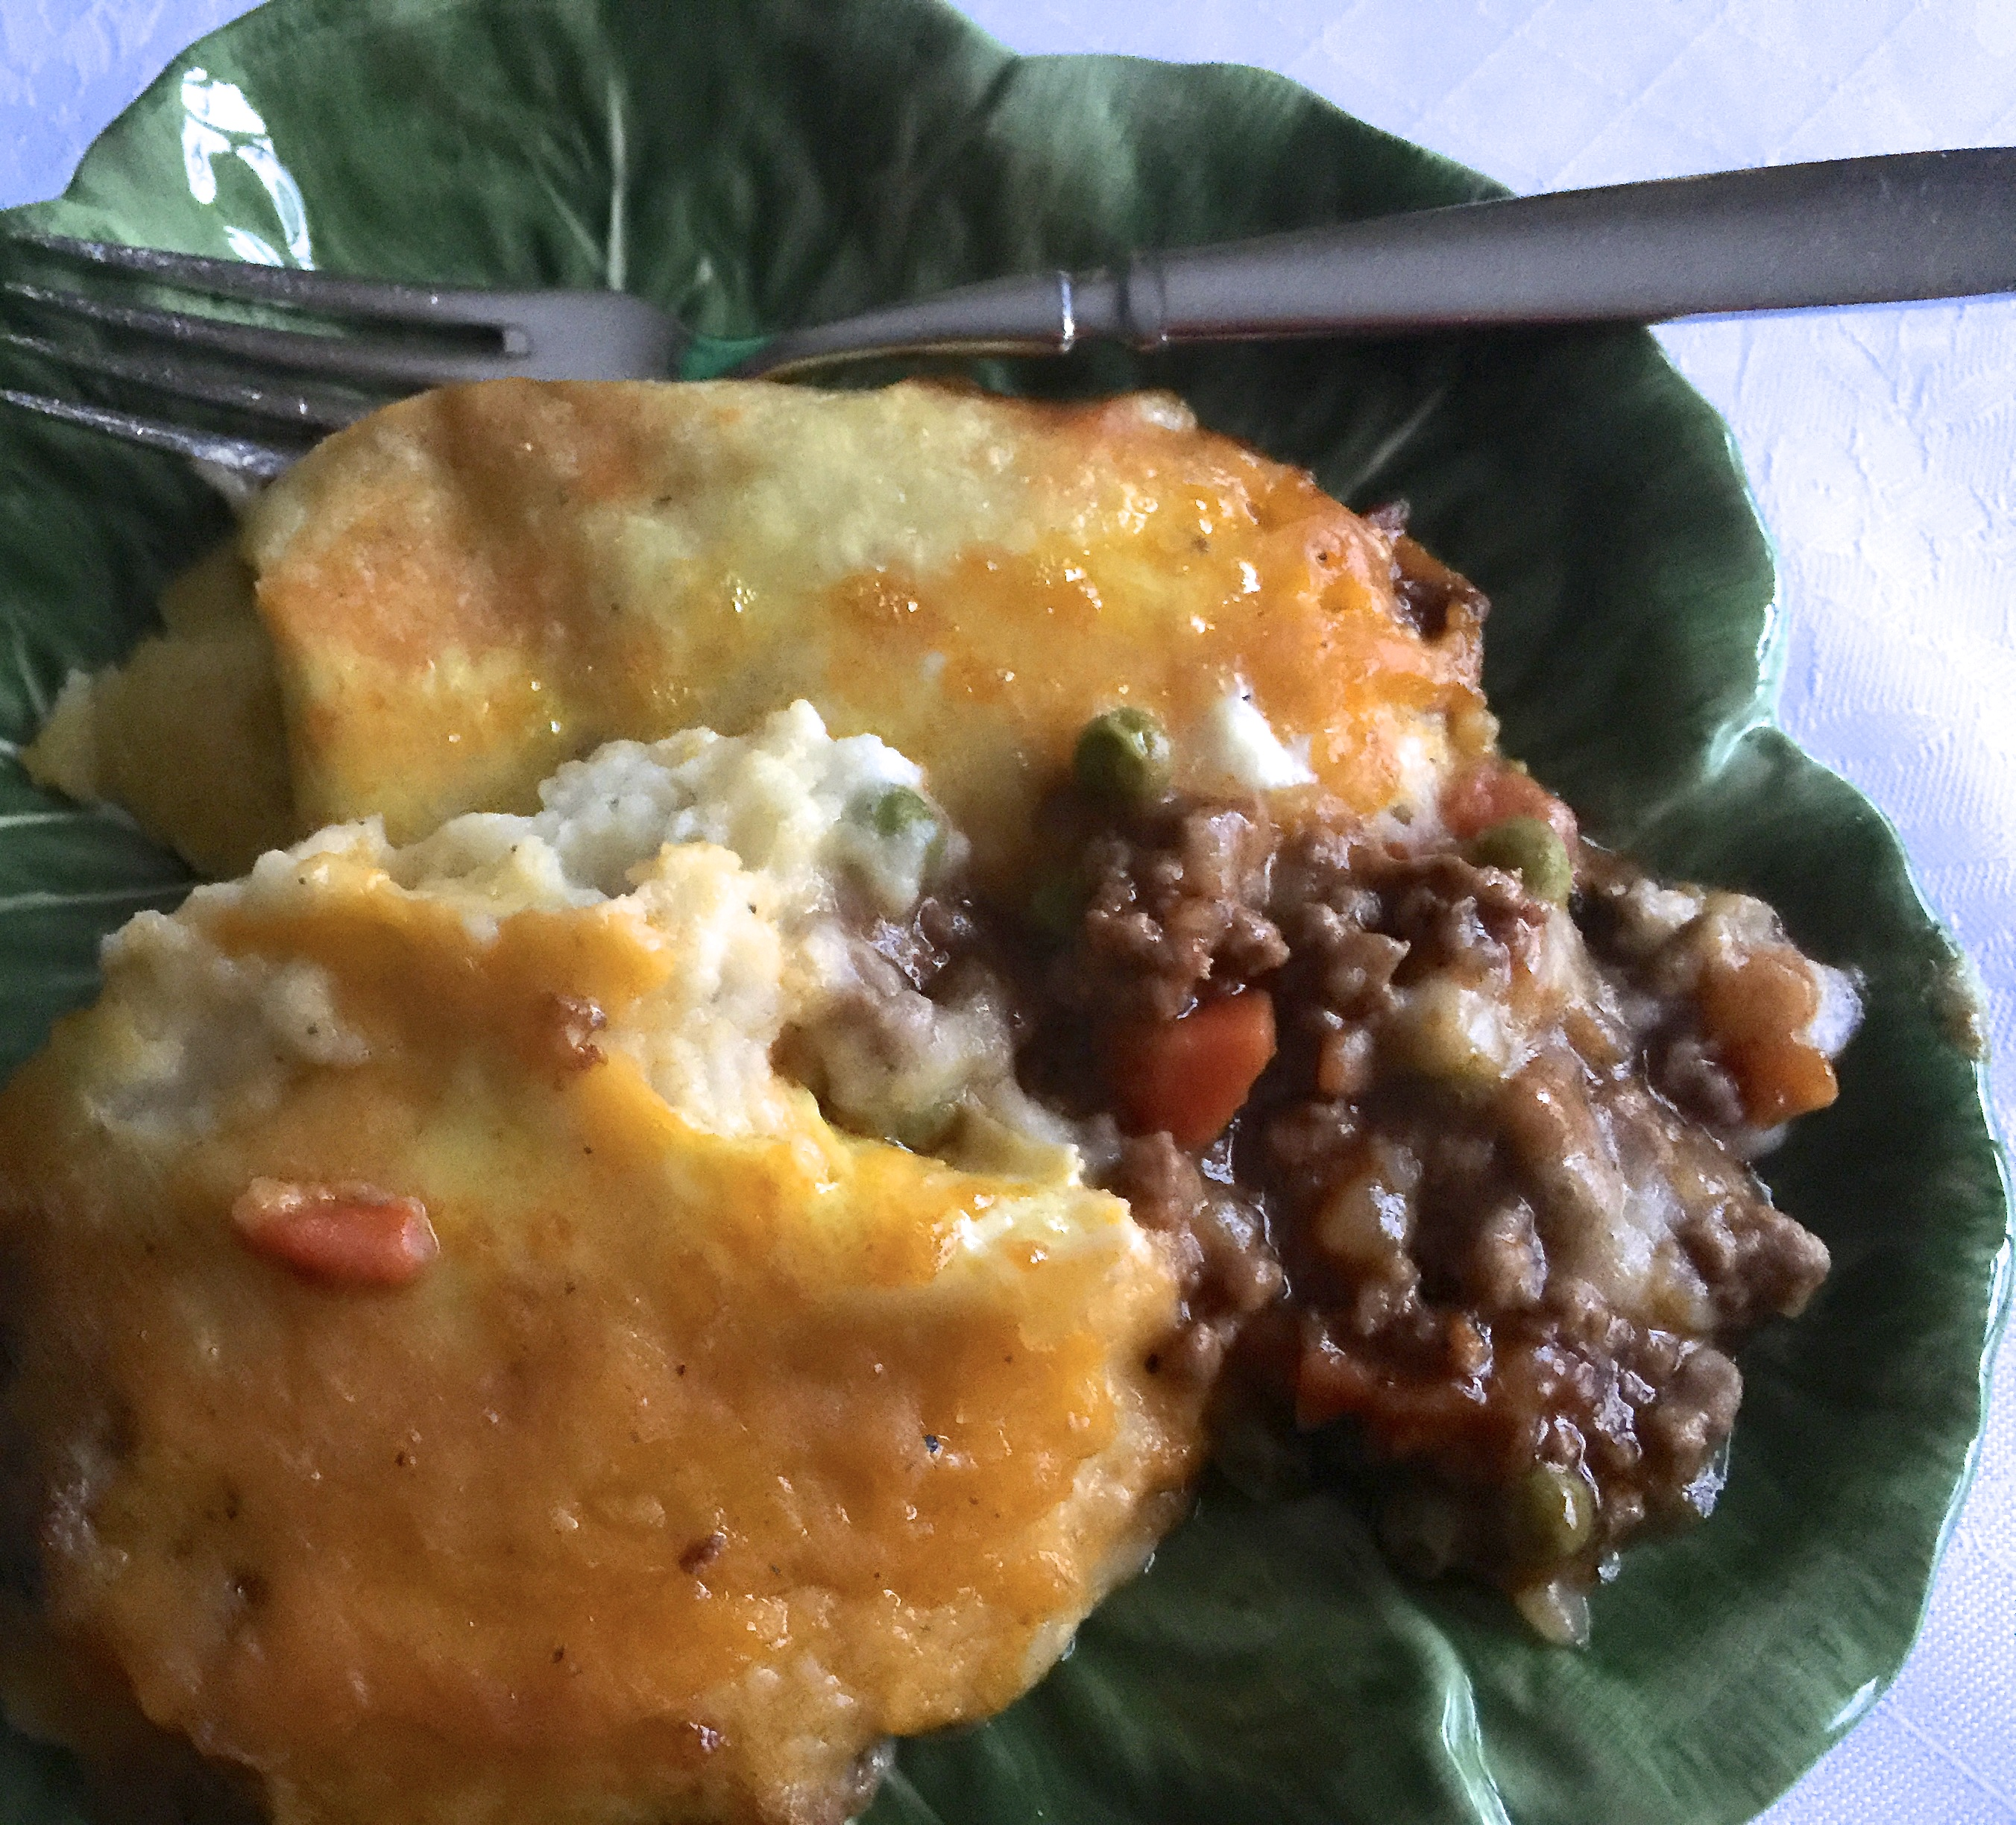 Celebrate St. Paddy's Day with Shepherd's Pie – Traditional Irish Fare